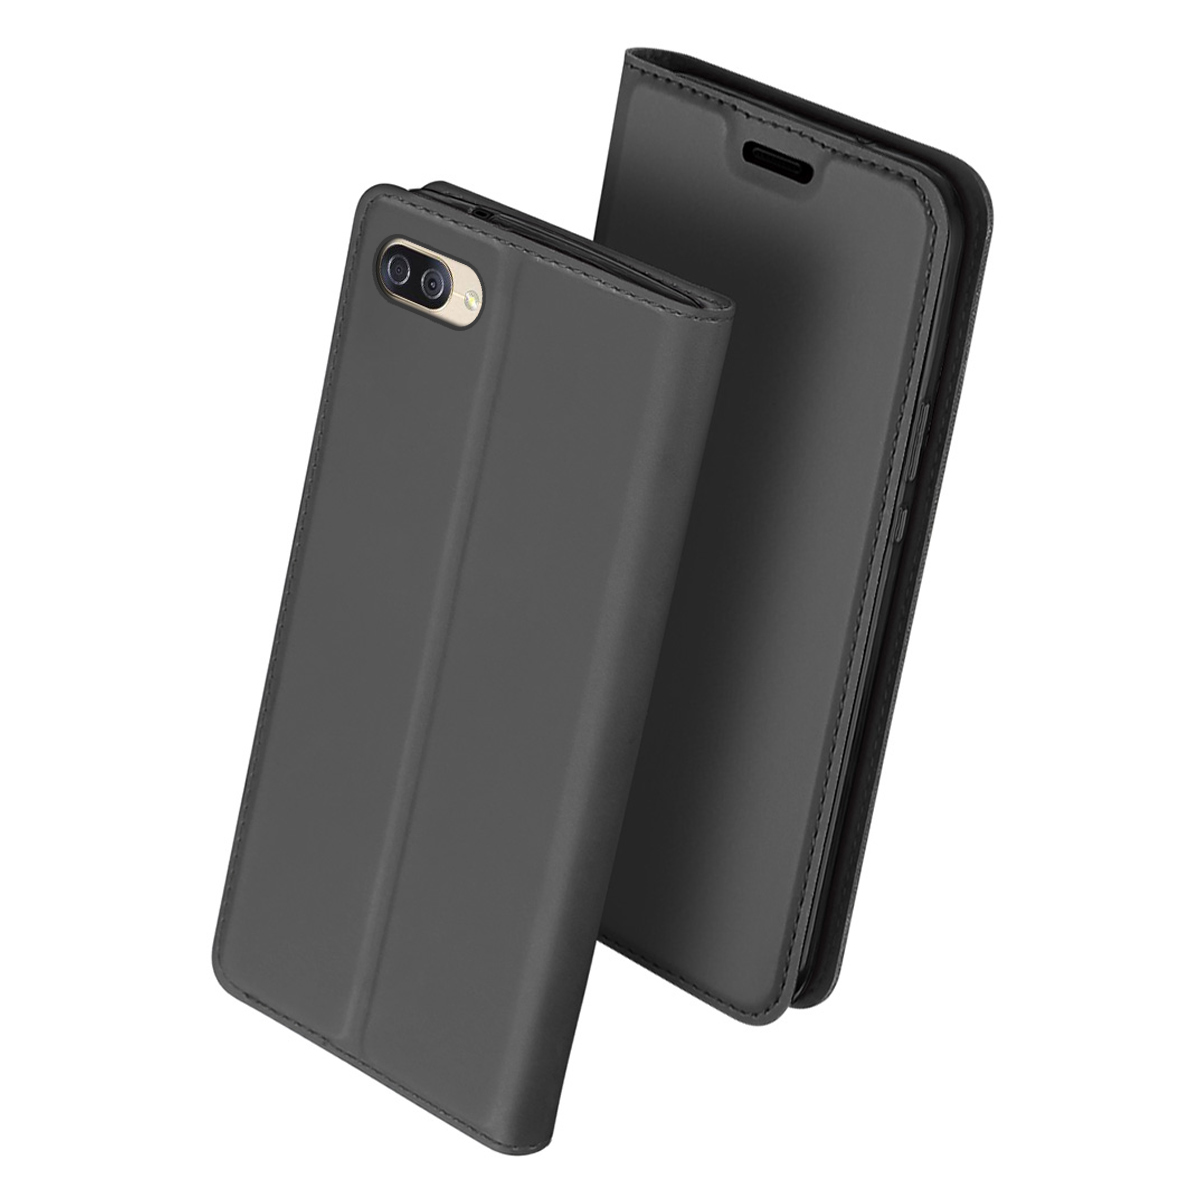 For Asus ZenFone 4 Max ZC520KL ZC554KL Leather Wallet Case with Card Slot Magnetic Flip Stand Cover For ZenFone 4 Selfie ZD553KLFor Asus ZenFone 4 Max ZC520KL ZC554KL Leather Wallet Case with Card Slot Magnetic Flip Stand Cover For ZenFone 4 Selfie ZD553KL